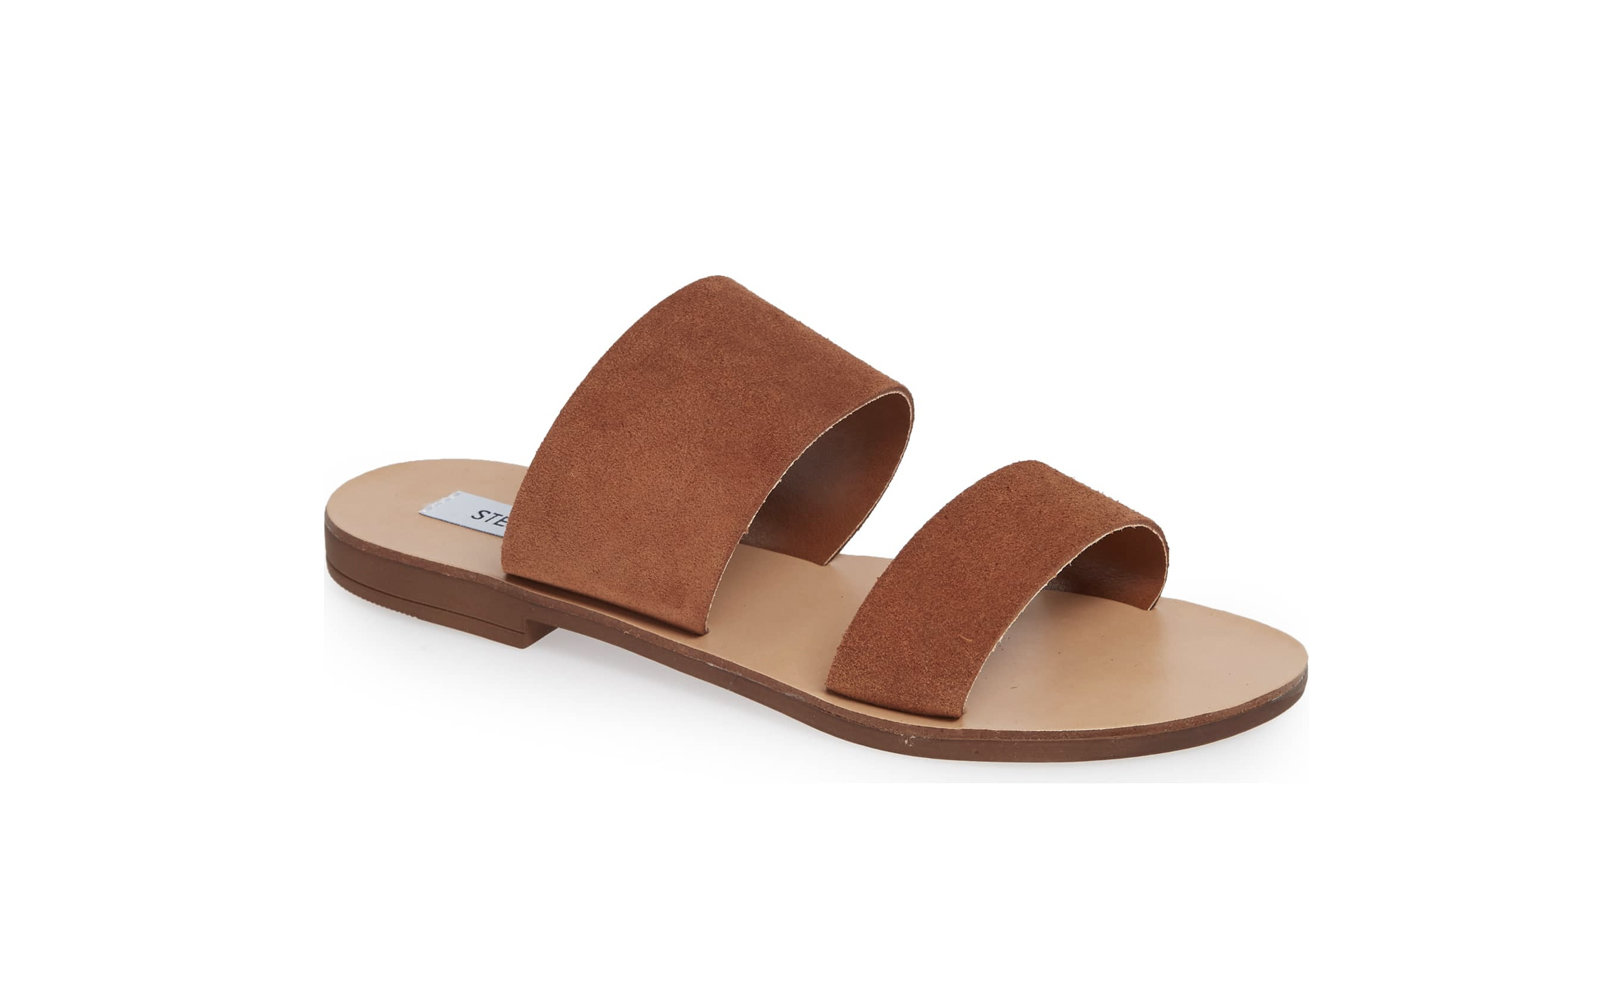 Best Sandals from the Nordstrom Sale